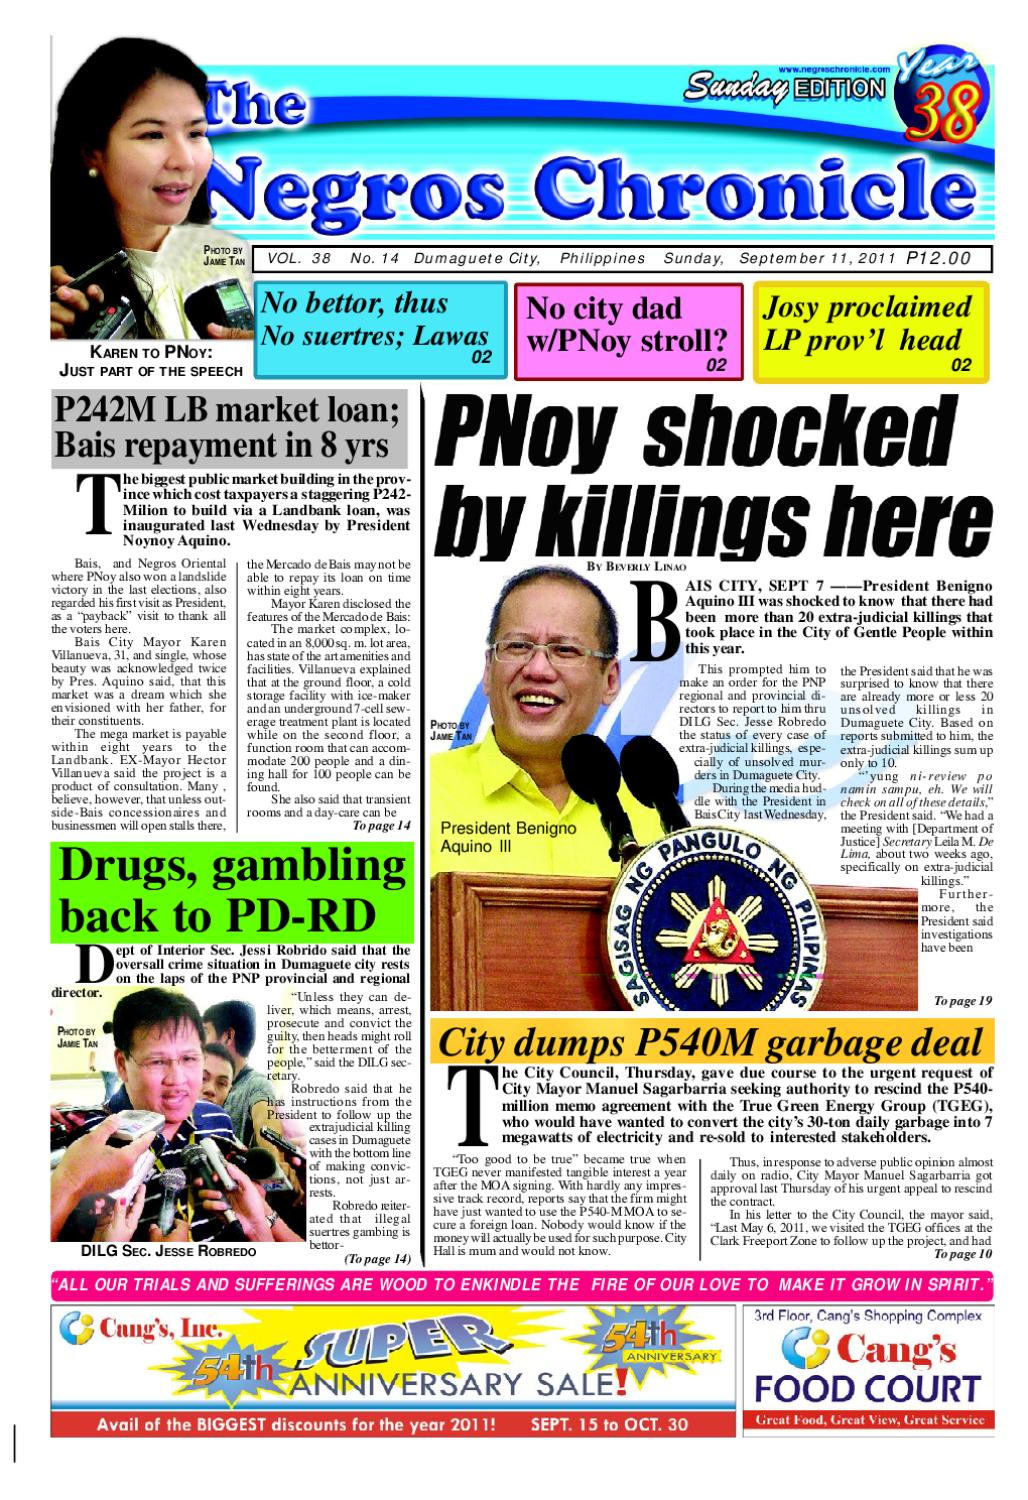 The Negros Chronicle September 11, 2011 issue by Gerard